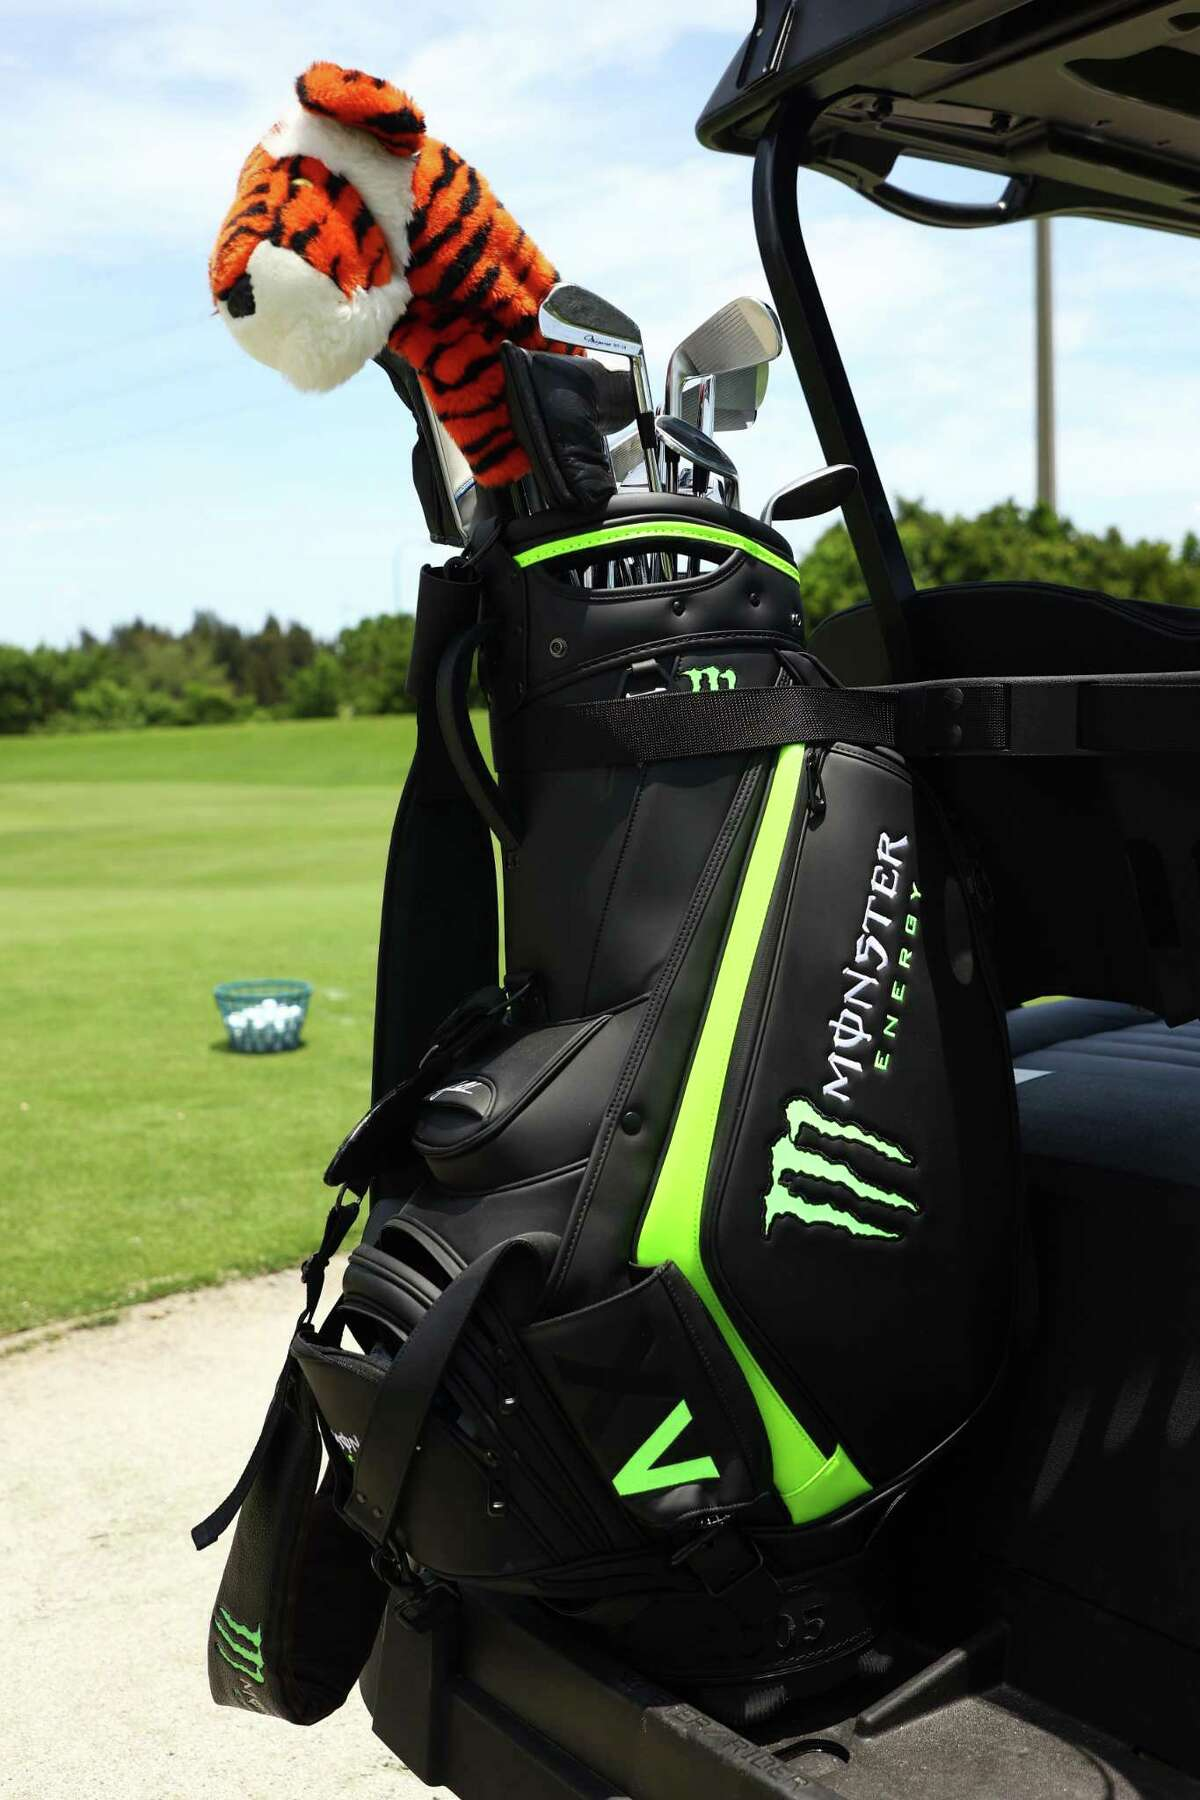 HOBE SOUND, FLORIDA - MAY 23: A detail of the bag of Tiger Woods during a practice round for The Match: Champions For Charity at Medalist Golf Club on May 23, 2020 in Hobe Sound, Florida. (Photo by Mike Ehrmann/Getty Images for The Match)